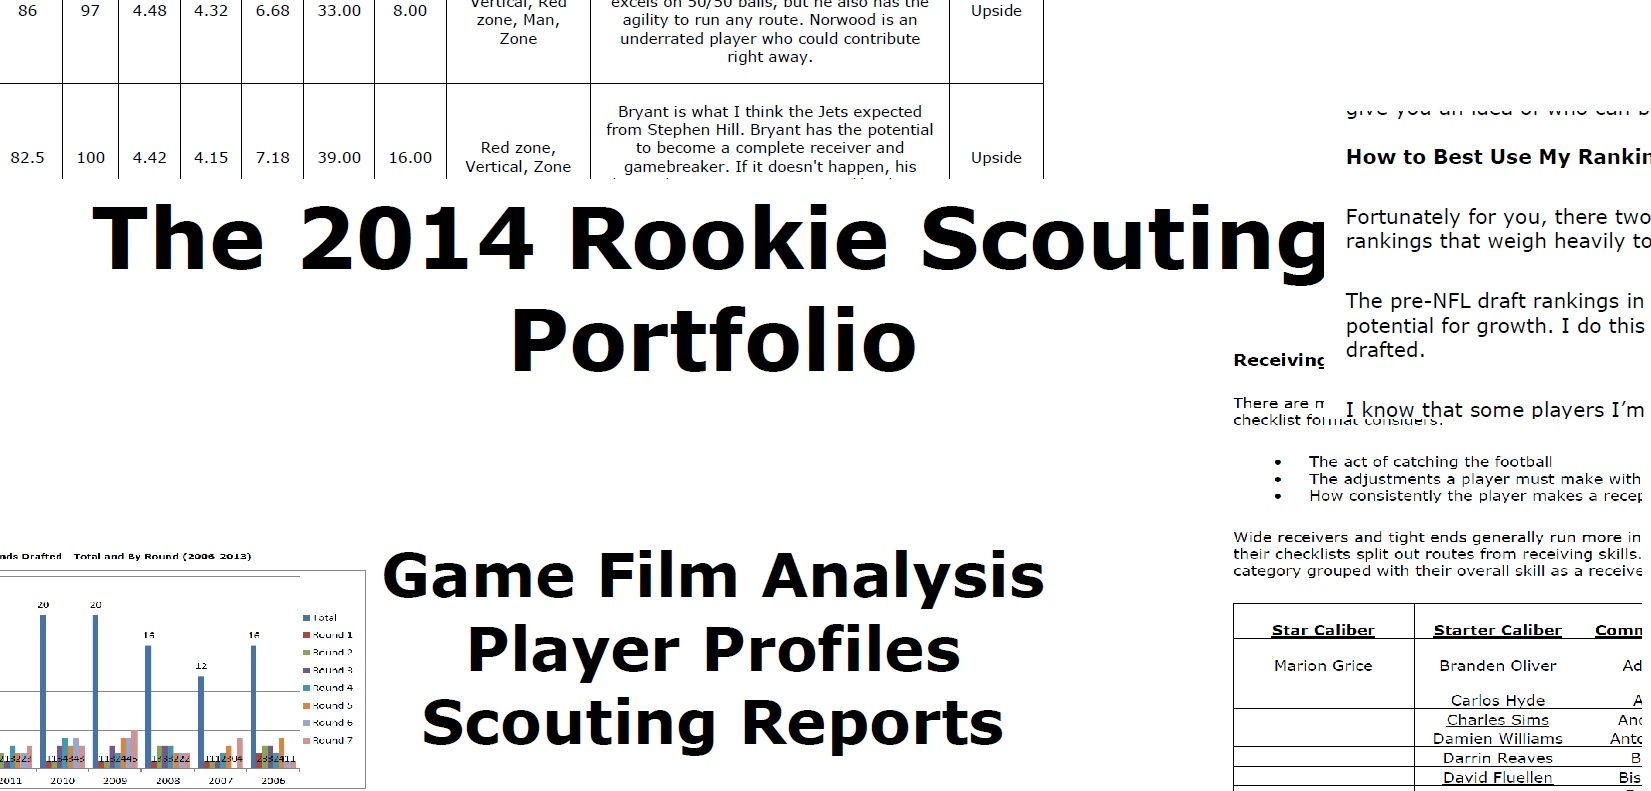 2014 Rookie Scouting Portfolio Video Tour